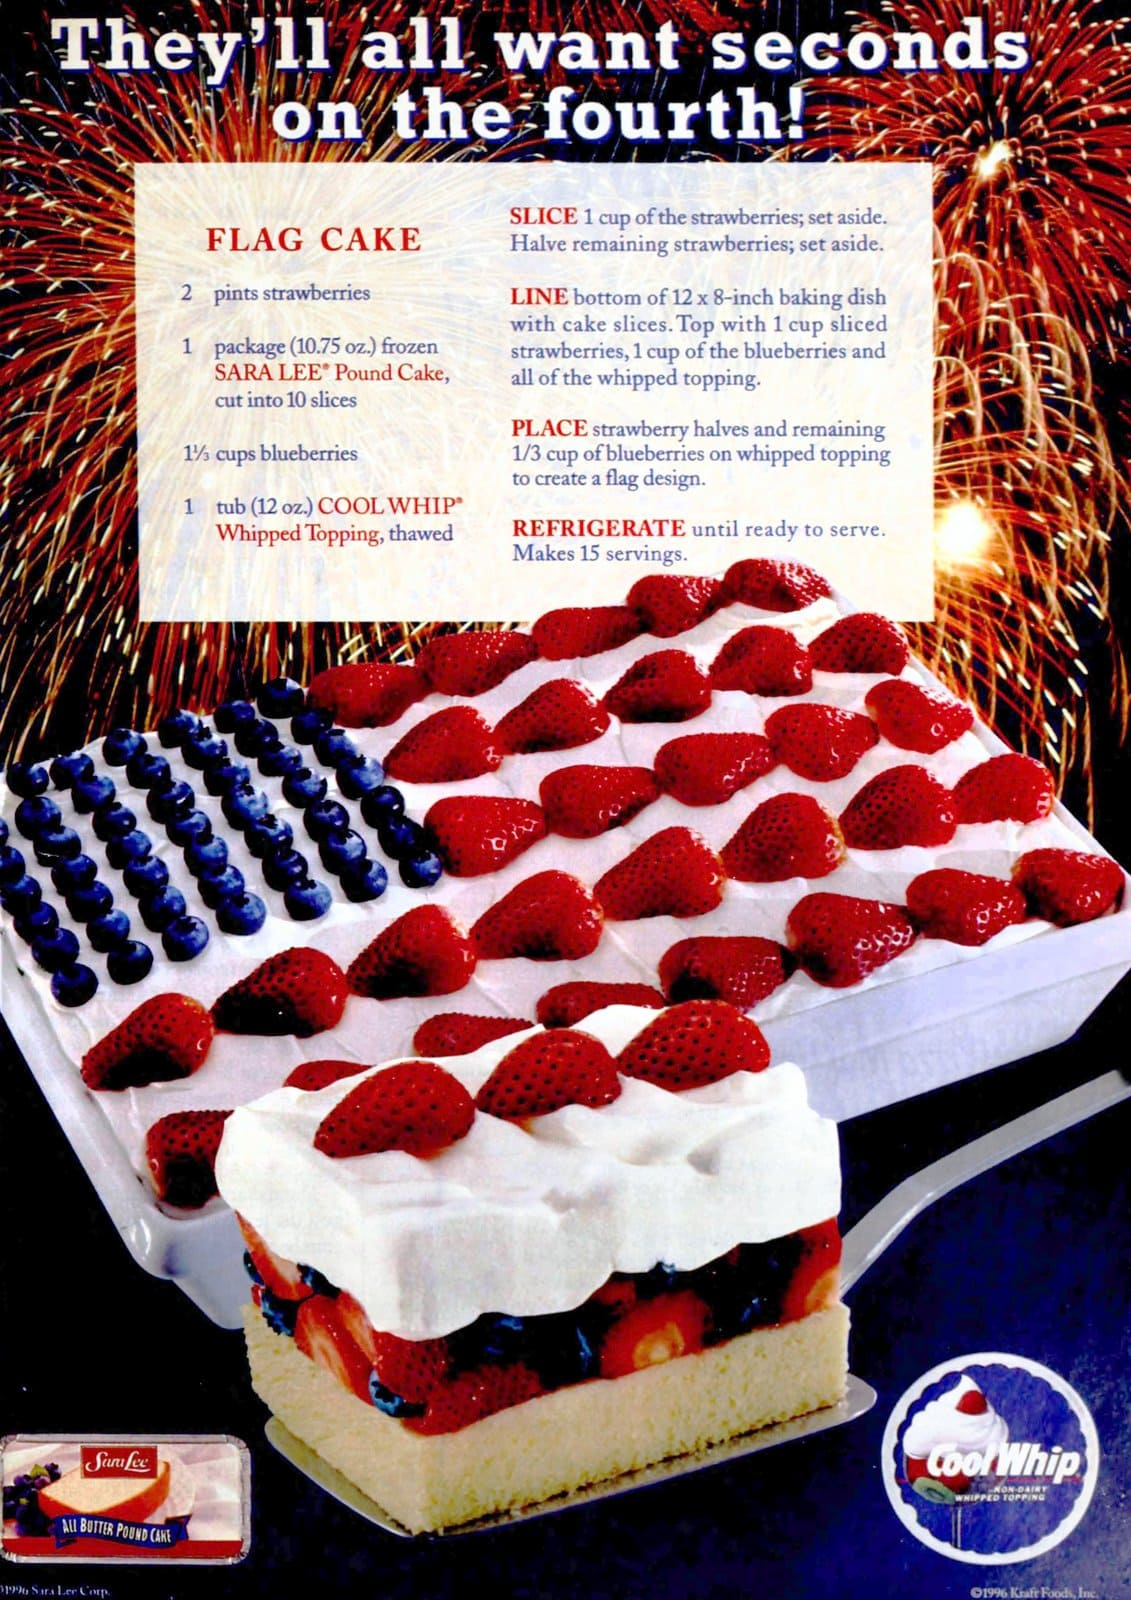 Flag dessert cake with strawberries and blueberries The classic recipe from the 1990s